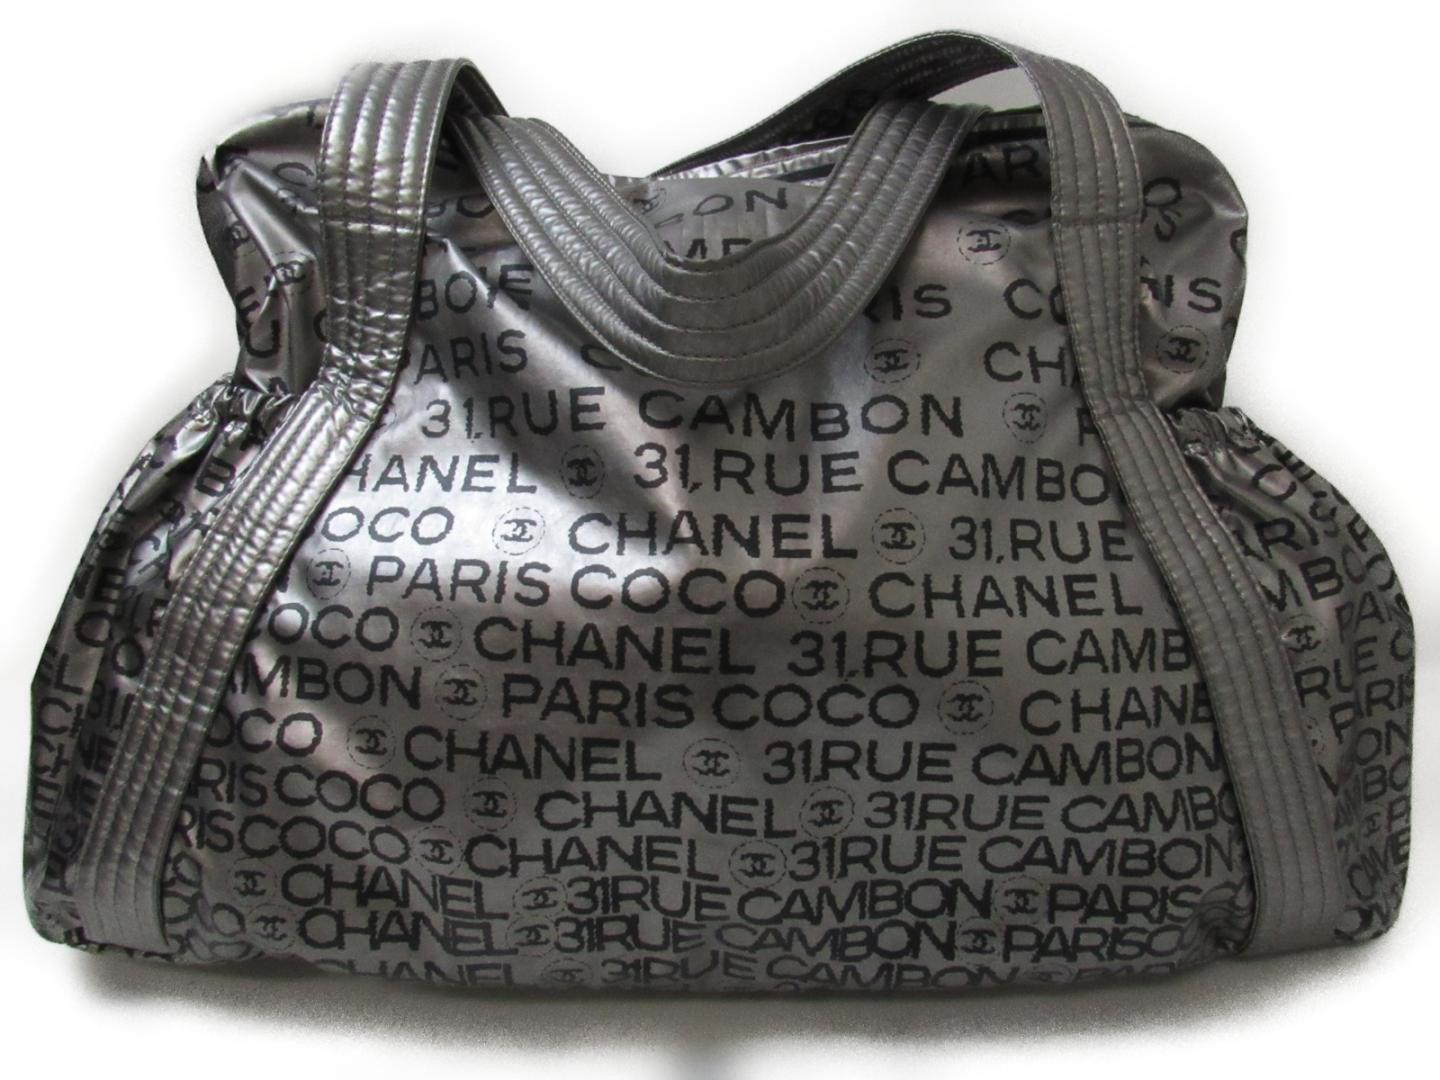 857559d1b692b9 Lyst - Chanel Unlimited Bag Tote Bag Nylon Silver in Metallic